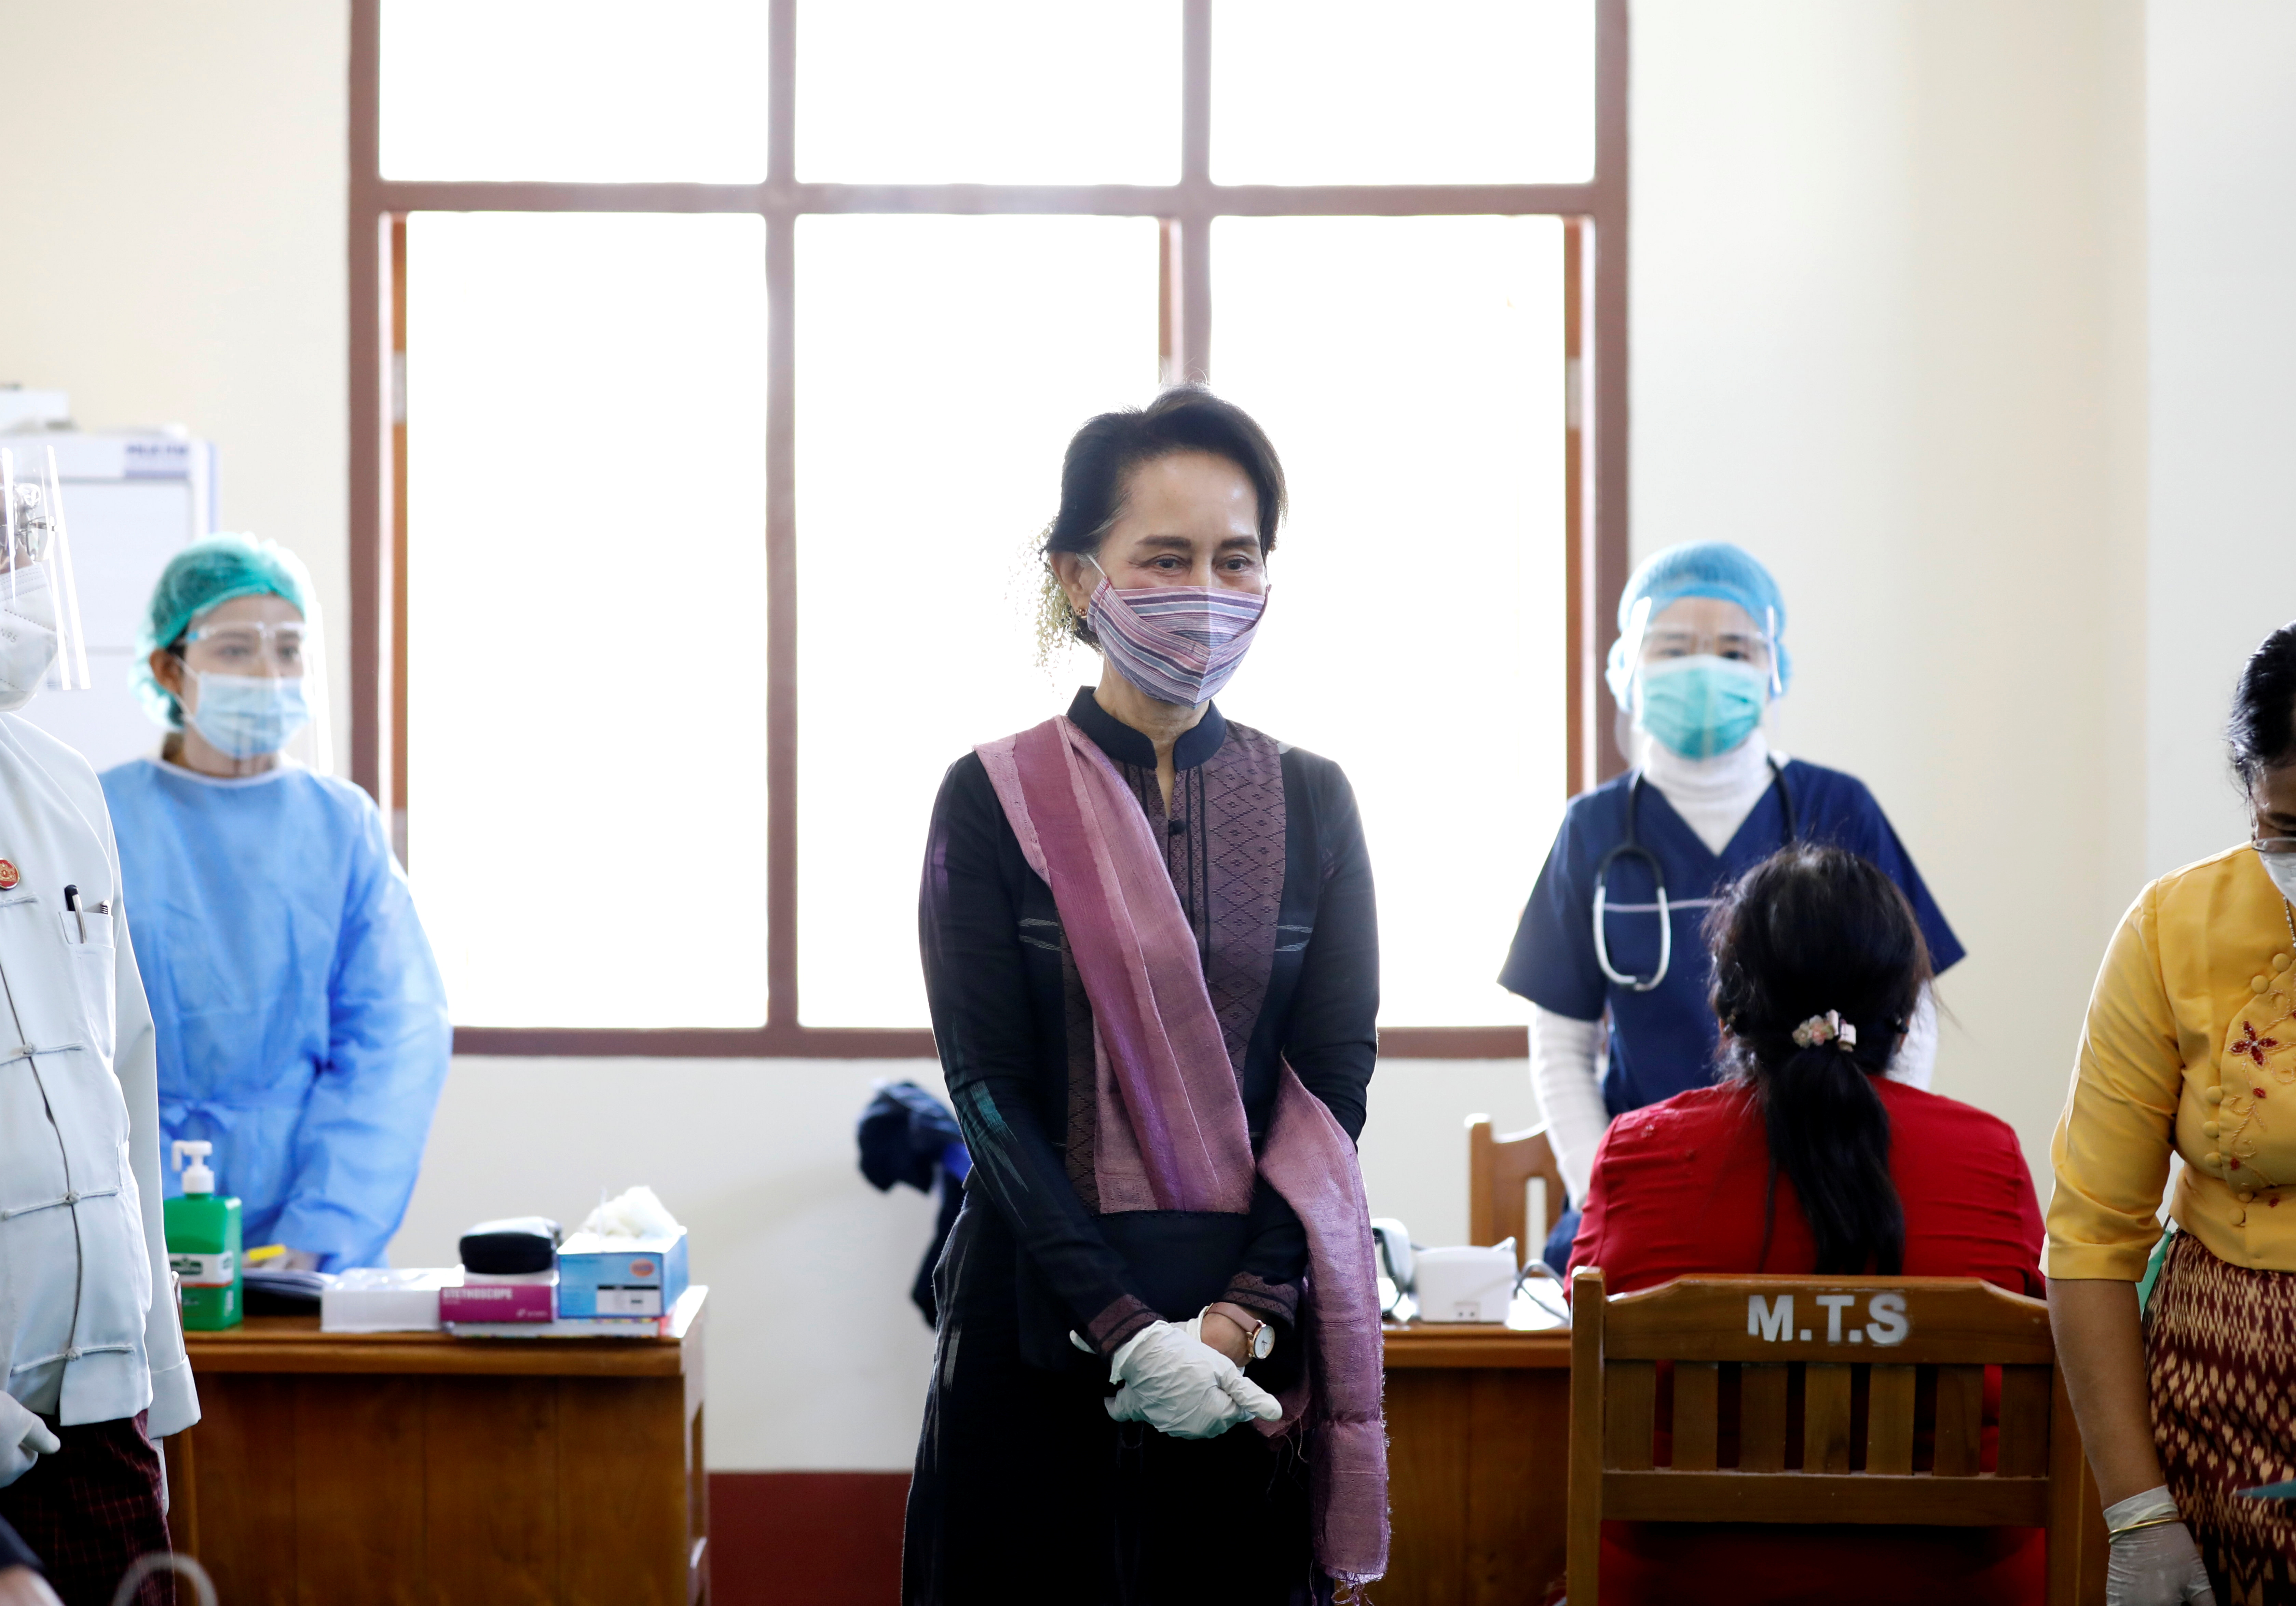 Myanmar State Counsellor Aung San Suu Kyi visits a hospital as medical workers receive the AstraZeneca